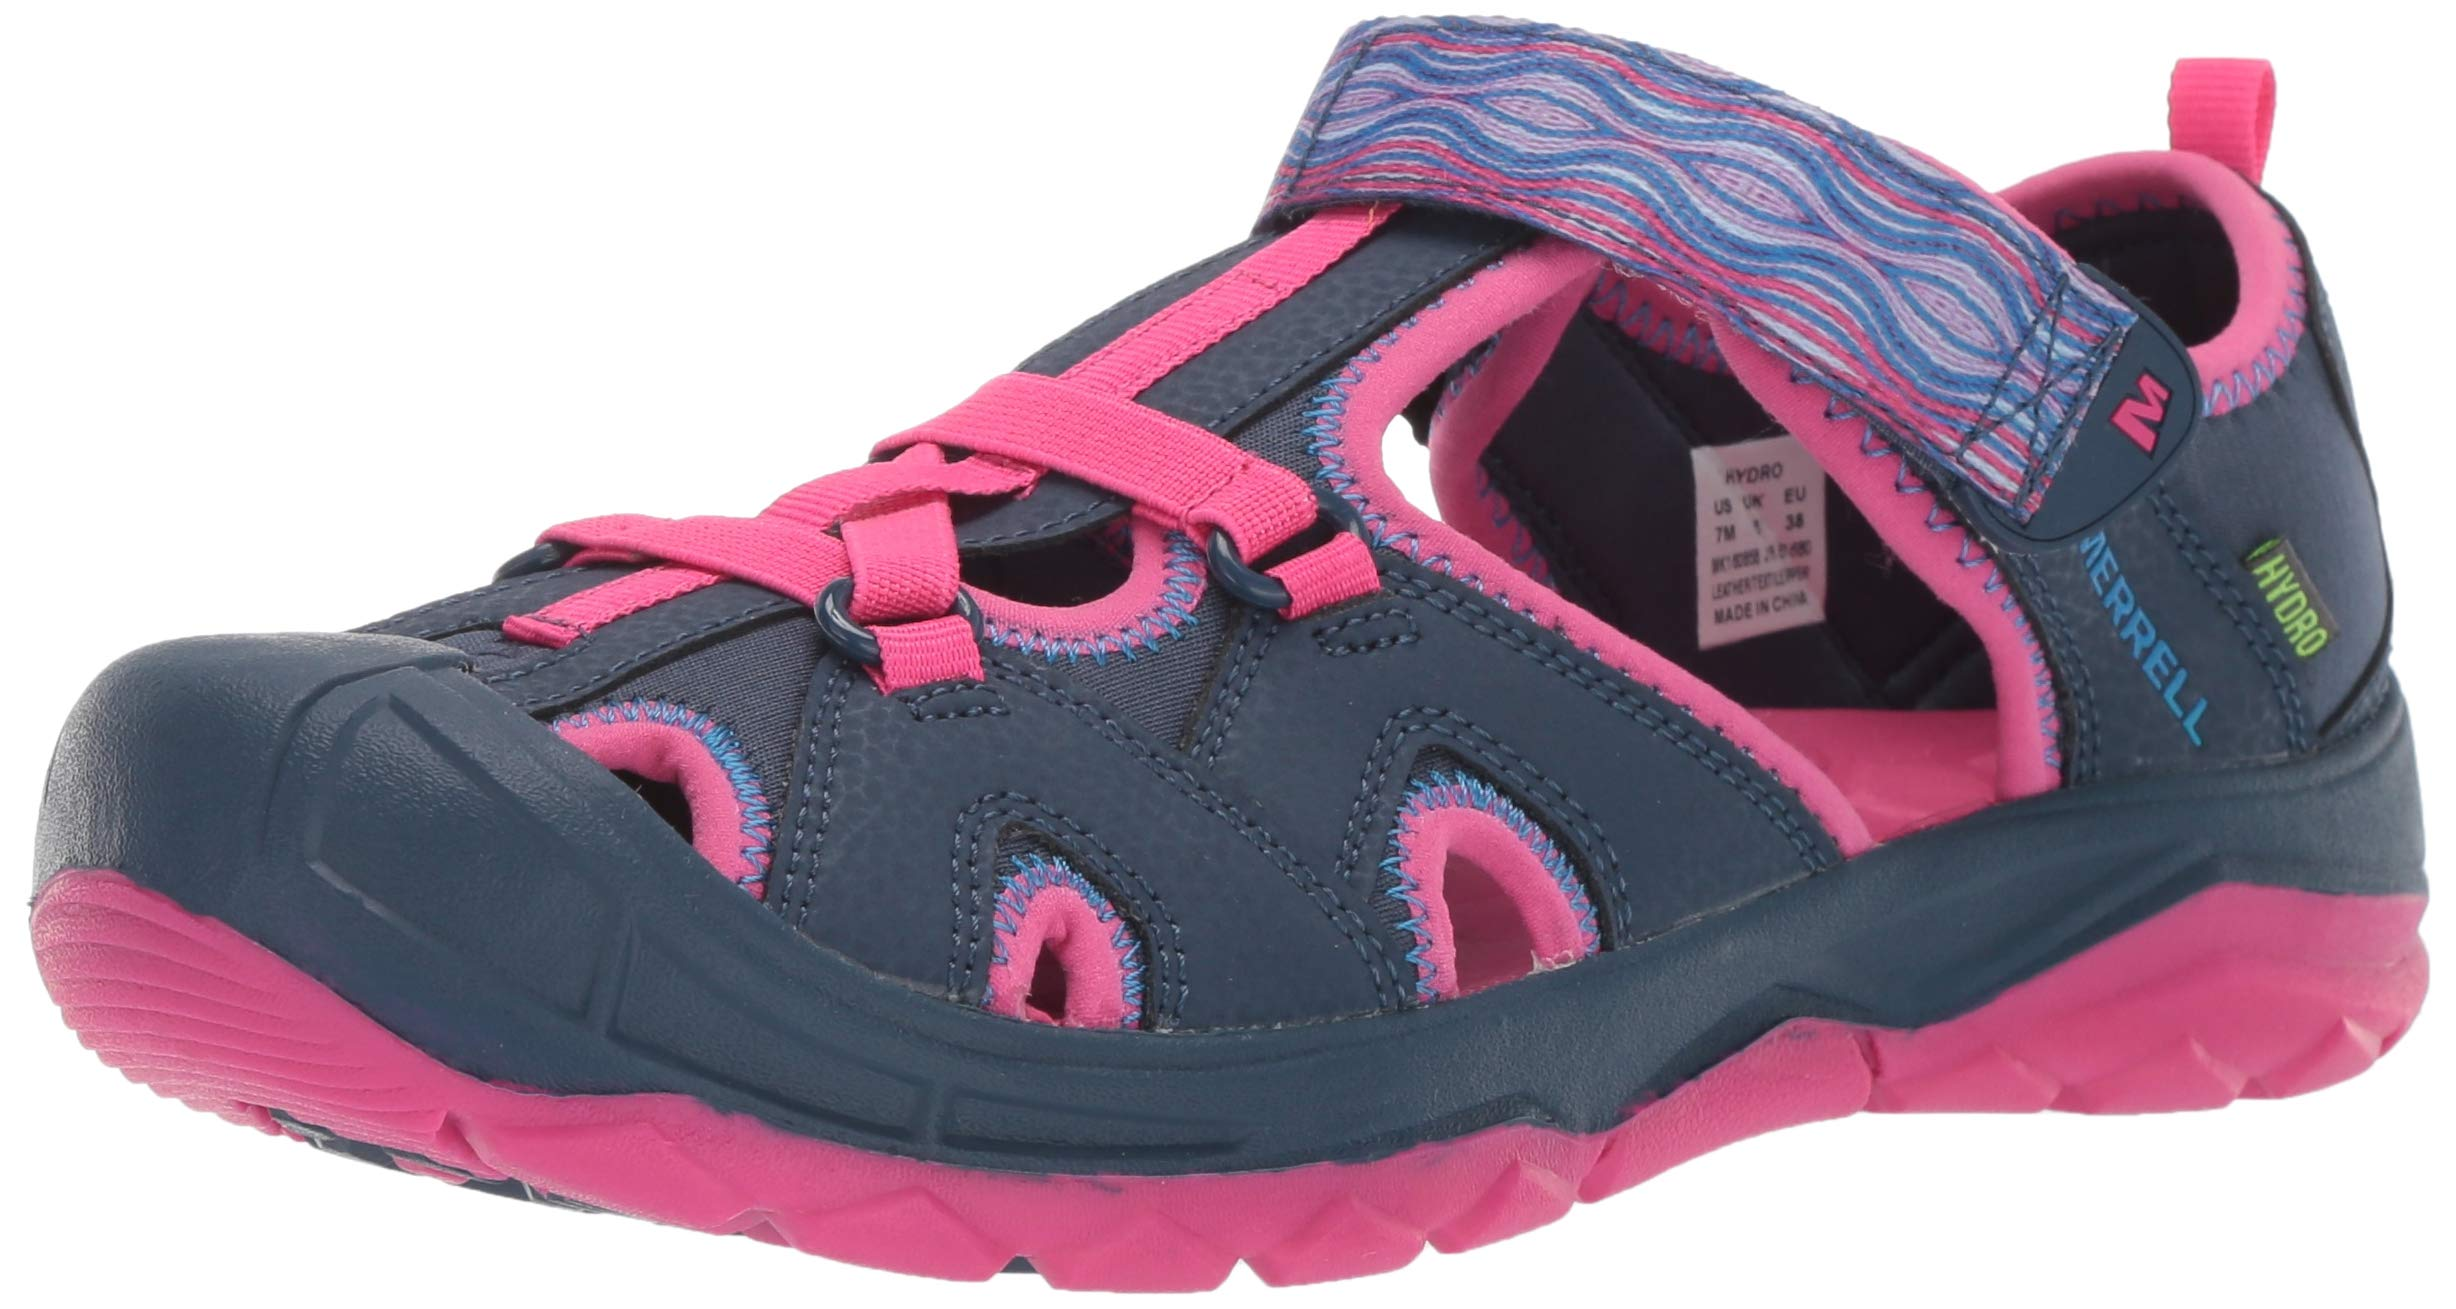 Merrell Girls' Hydro Sandal, Navy/Pink, 5 Wide US Toddler by Merrell